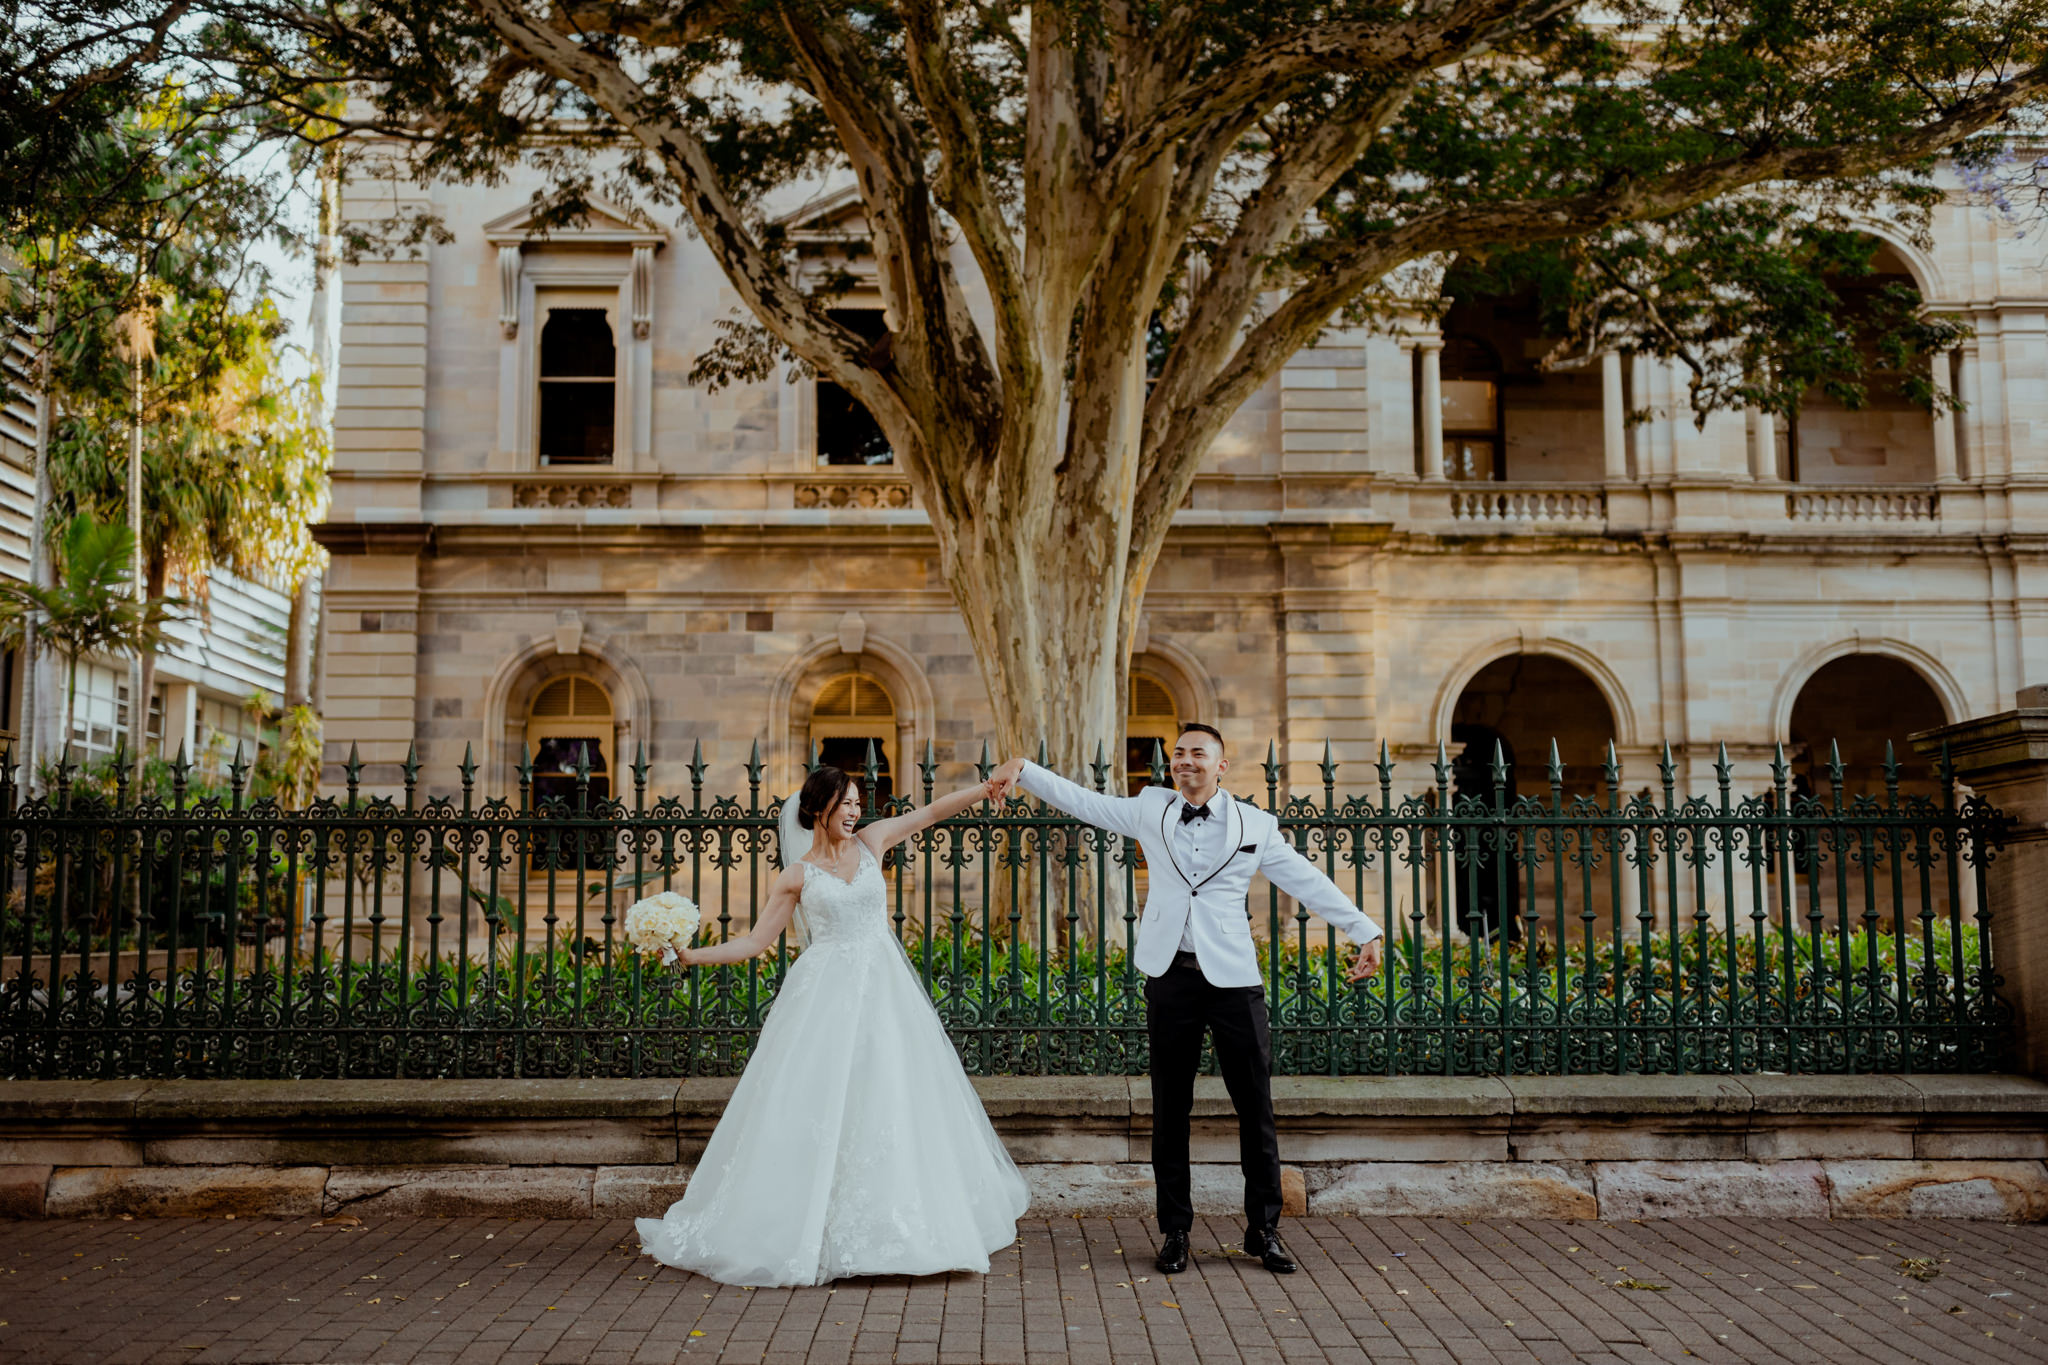 A Vietnamese wedding couple swing their arms playfully in front of a fenced sandstone building